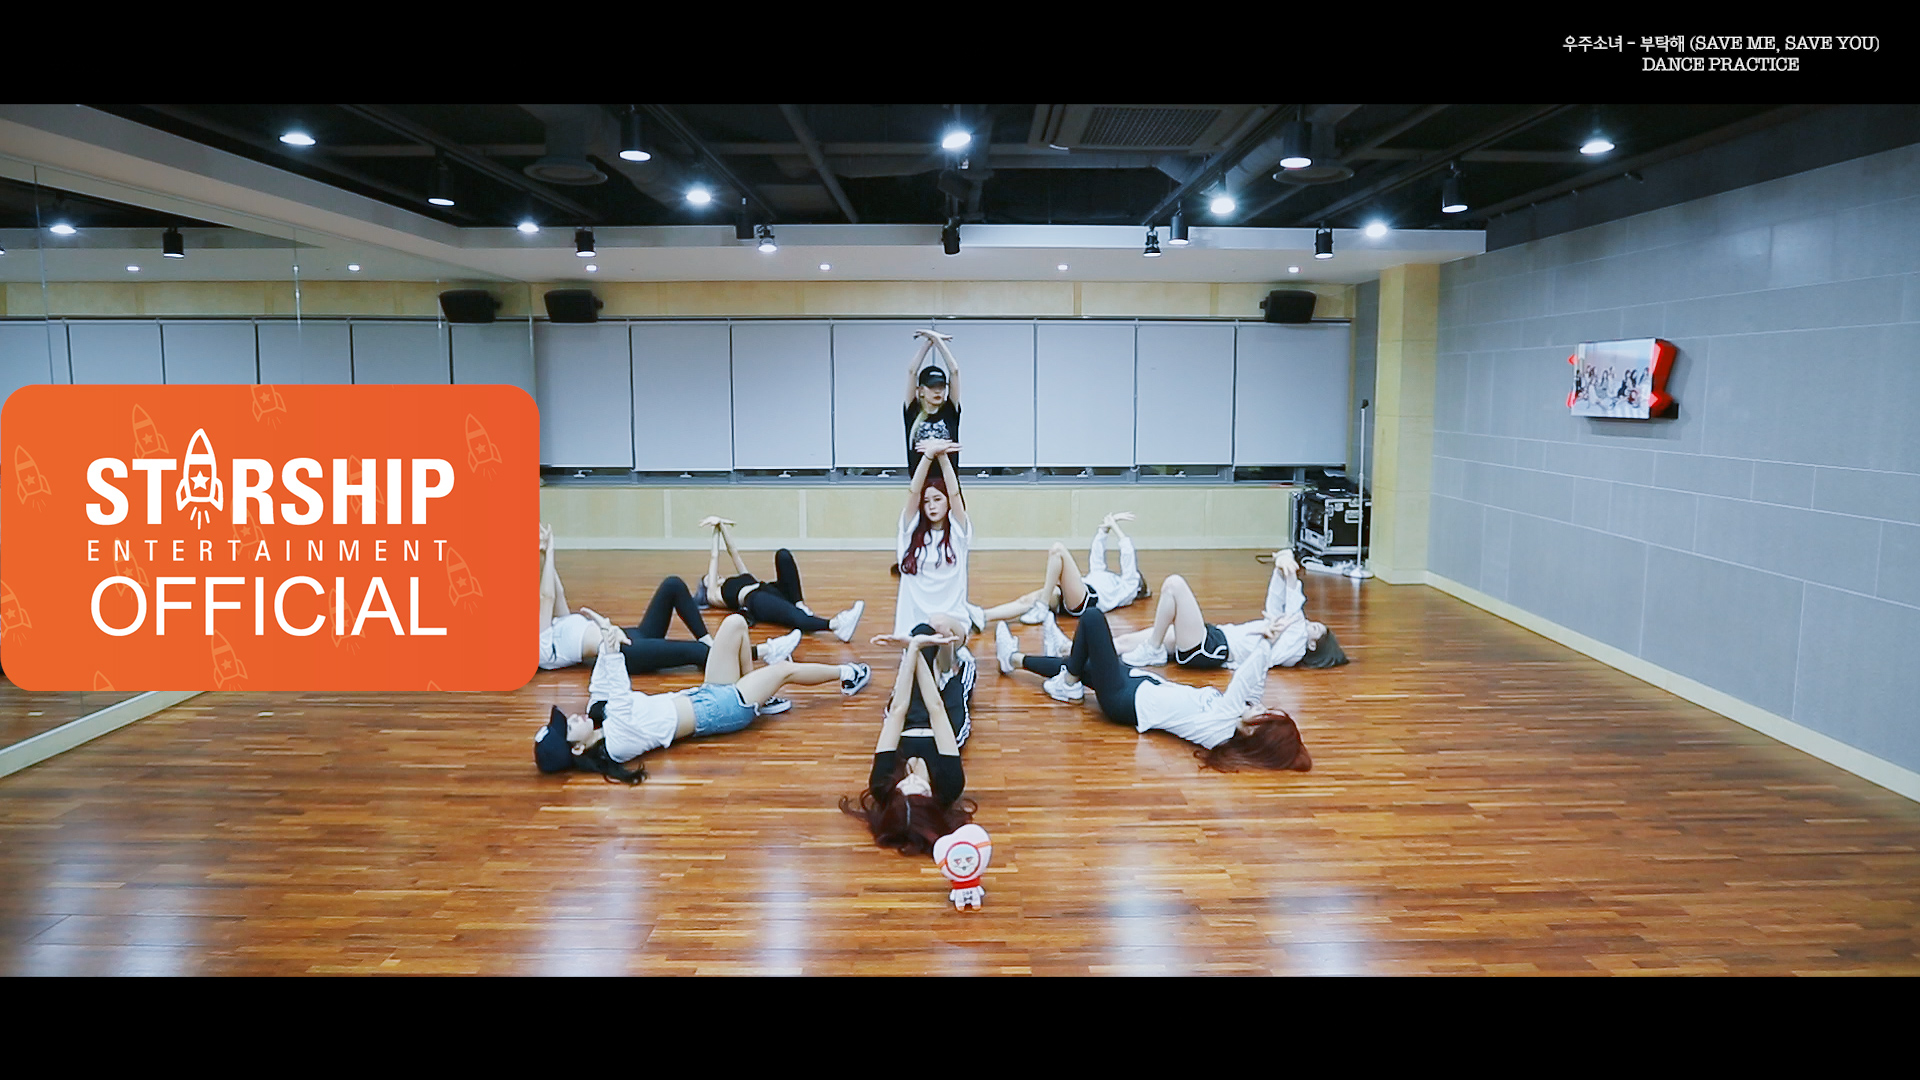 [Dance Practice] 우주소녀(WJSN) - 부탁해(SAVE ME, SAVE YOU) Fixed Cam Ver.